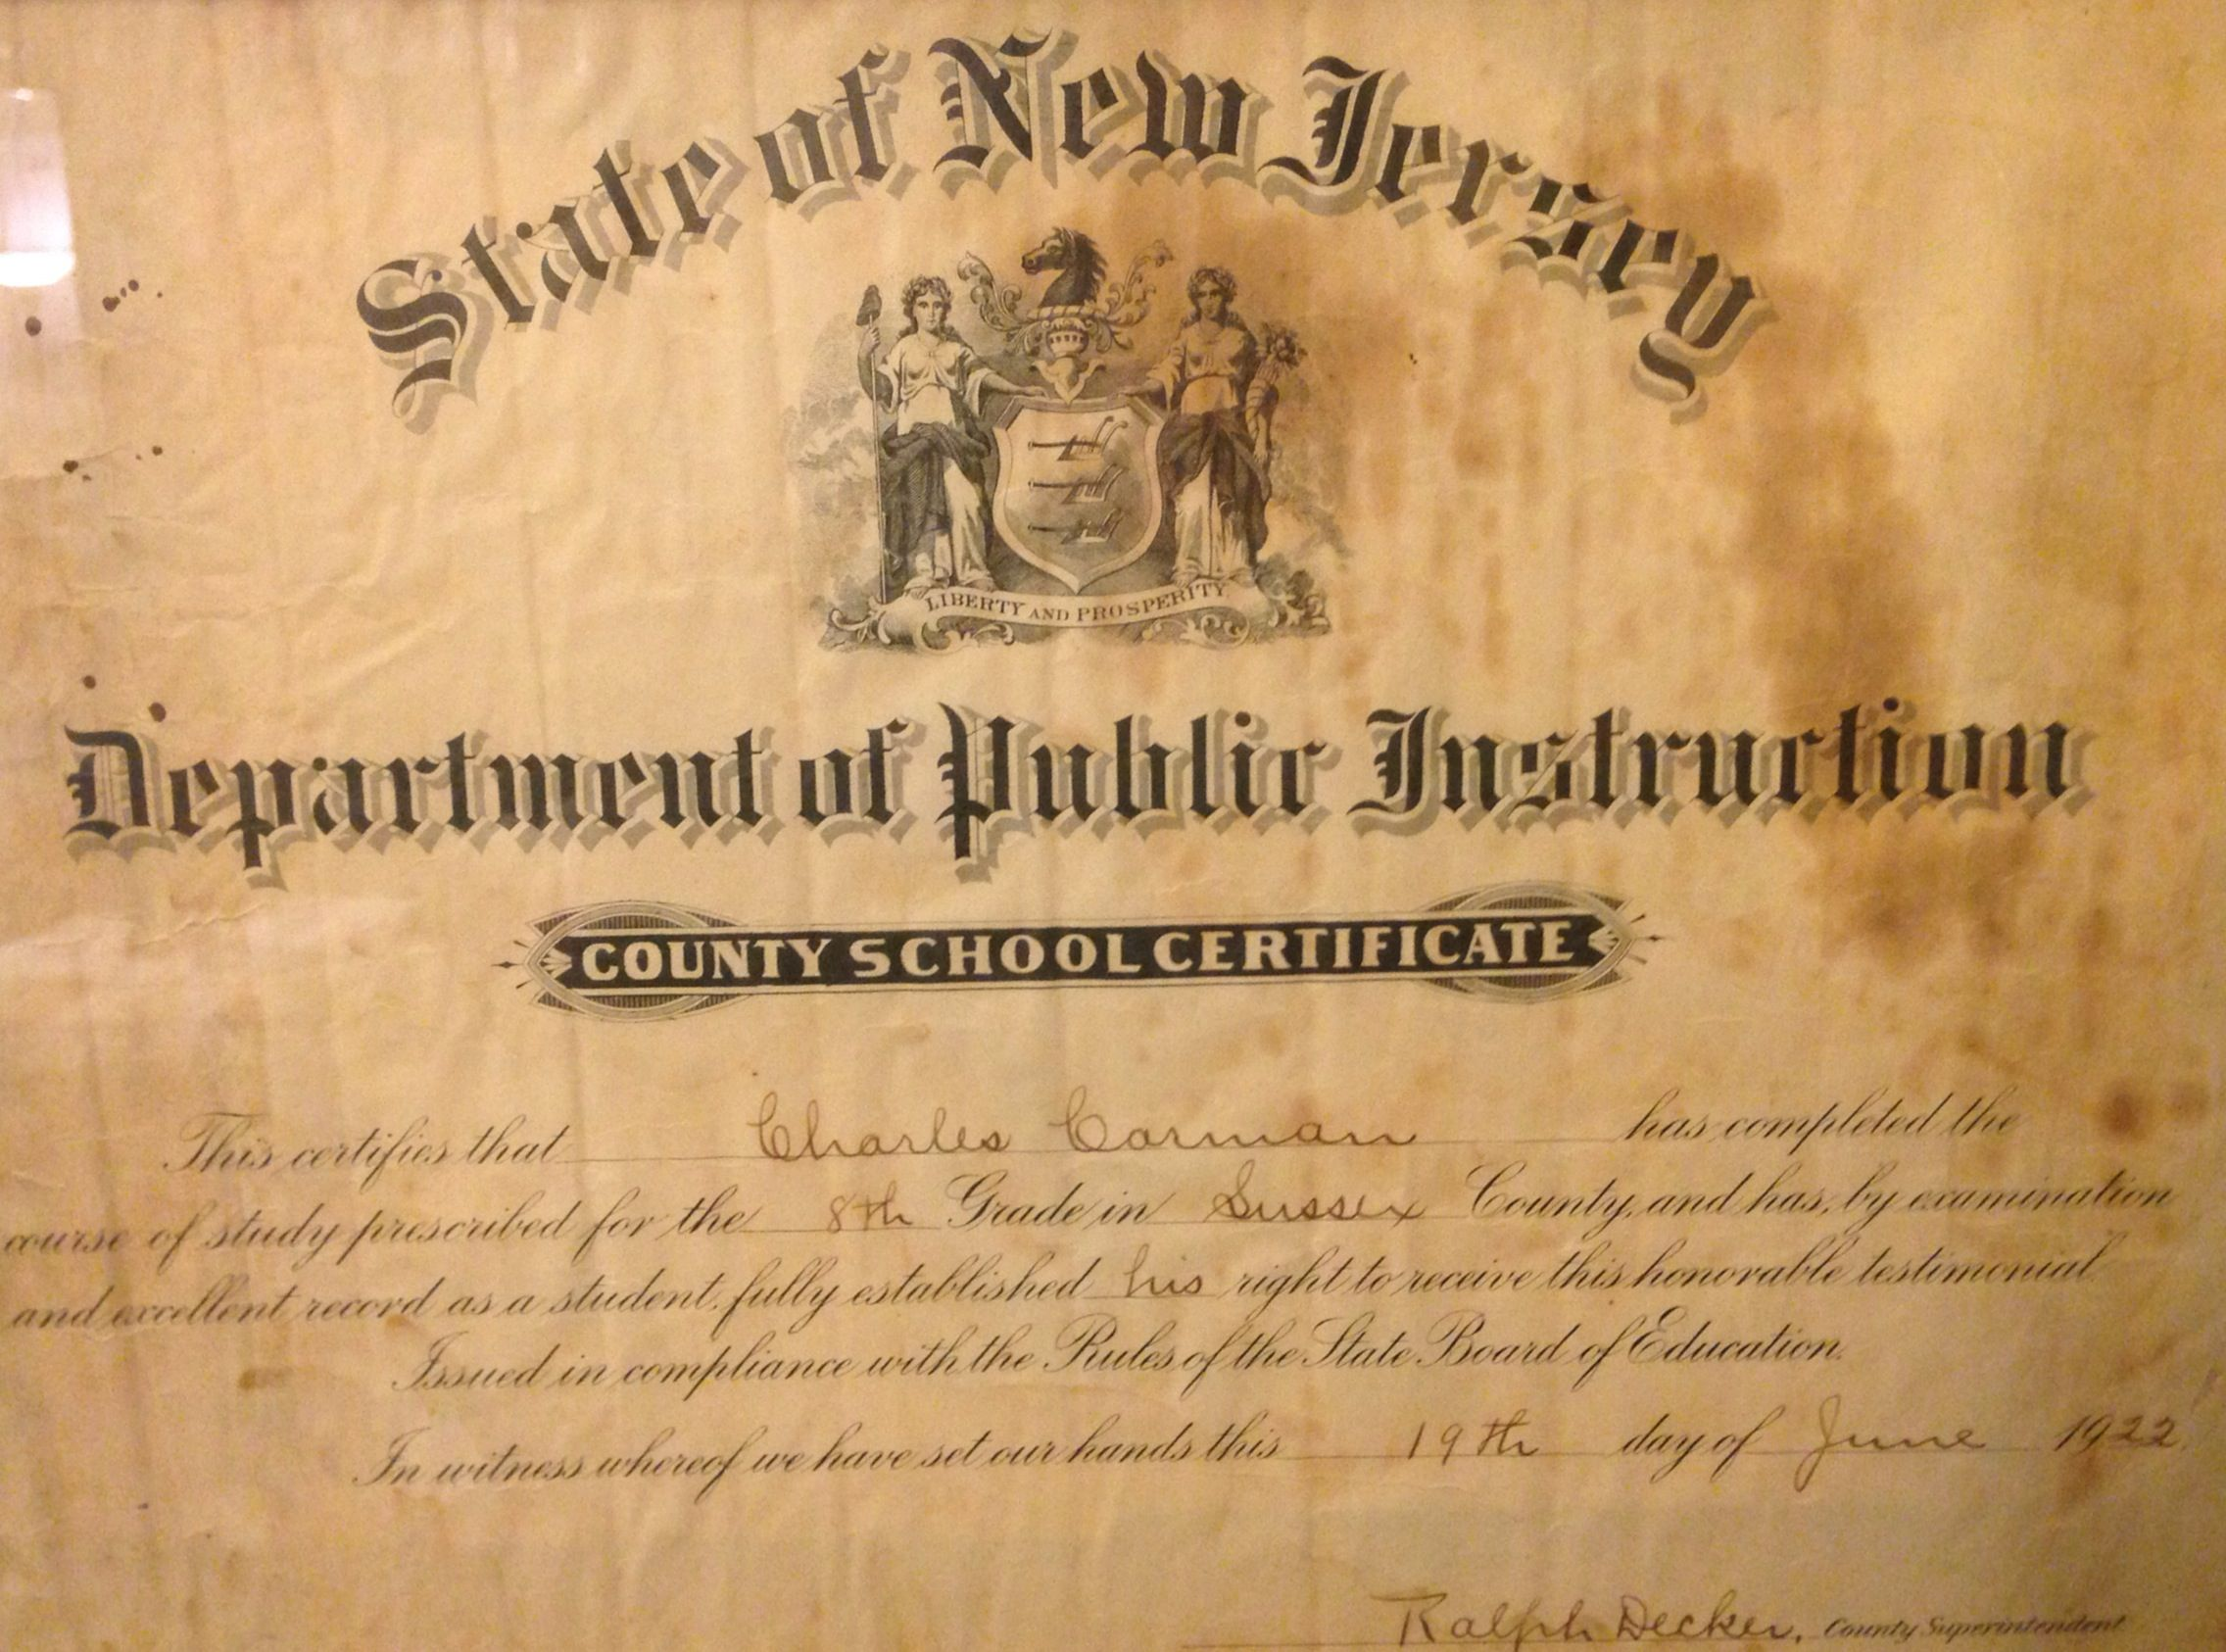 June 19 State Of New Jersey Department Of Public